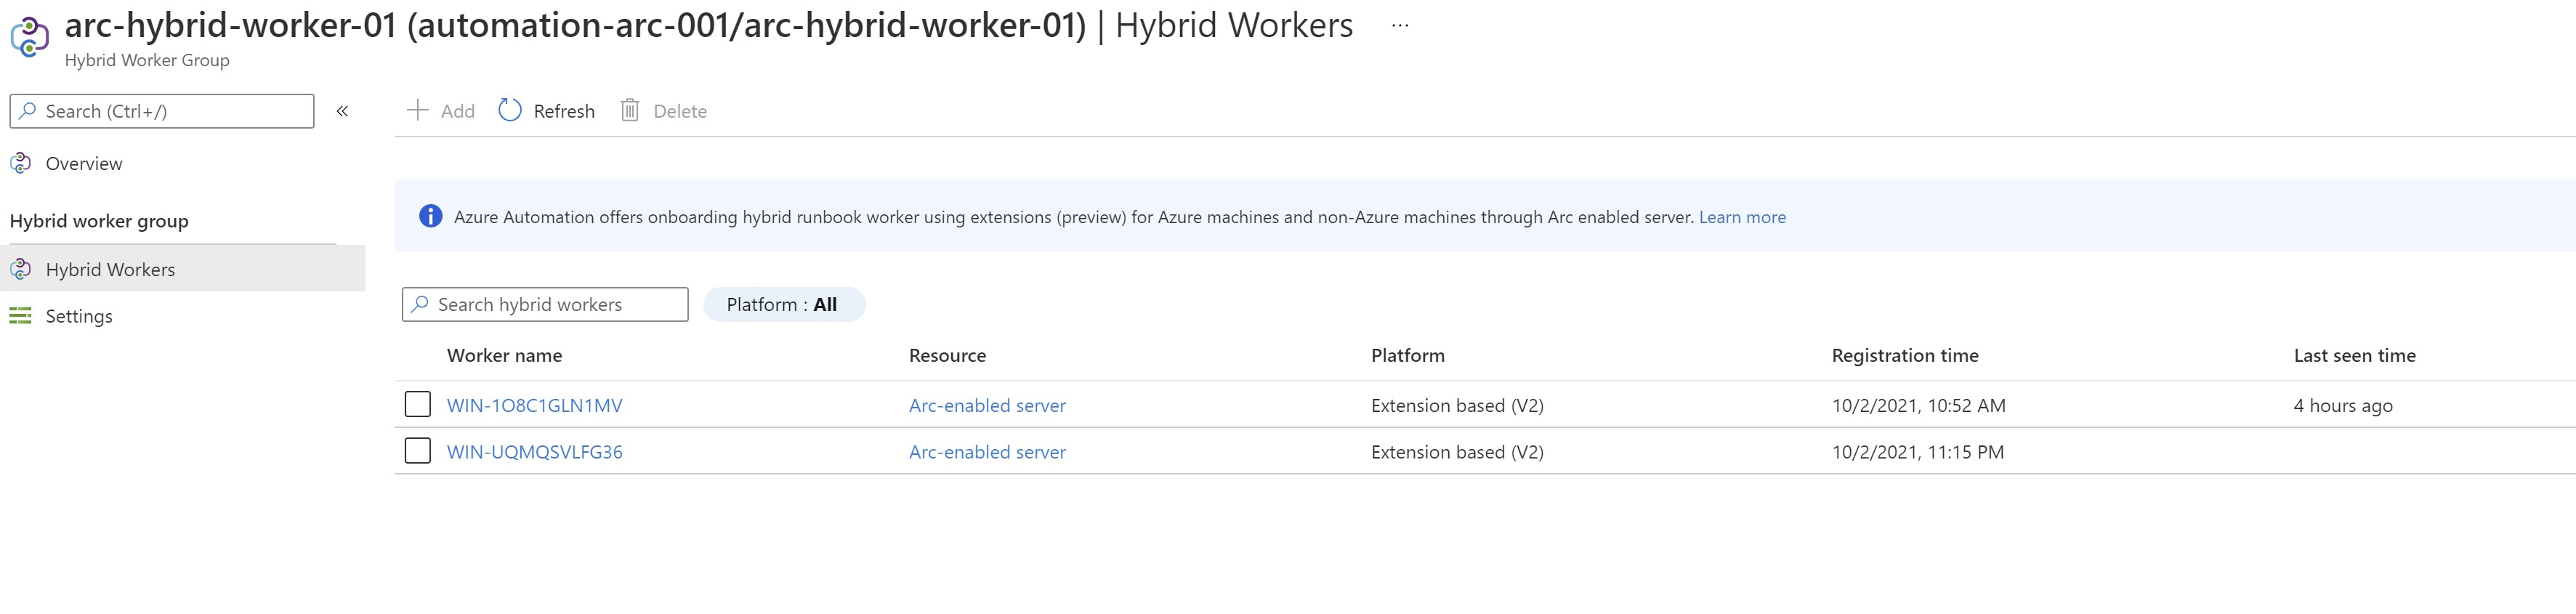 Add all hybrid workers